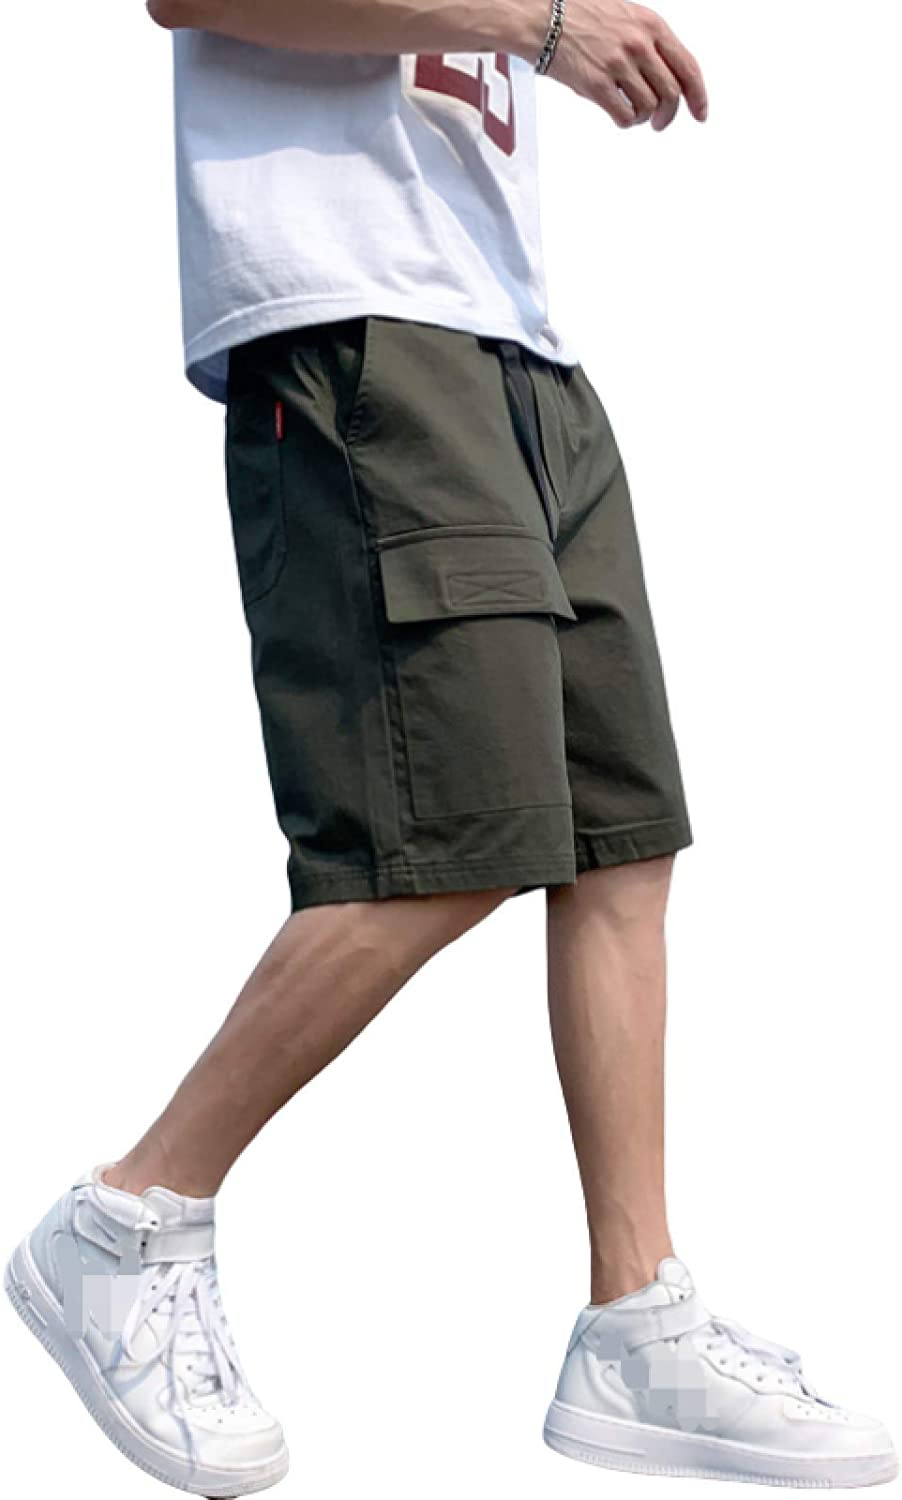 Wantess Men's Casual Shorts Summer Fashion Stitching Pockets Loose Large Size Trend